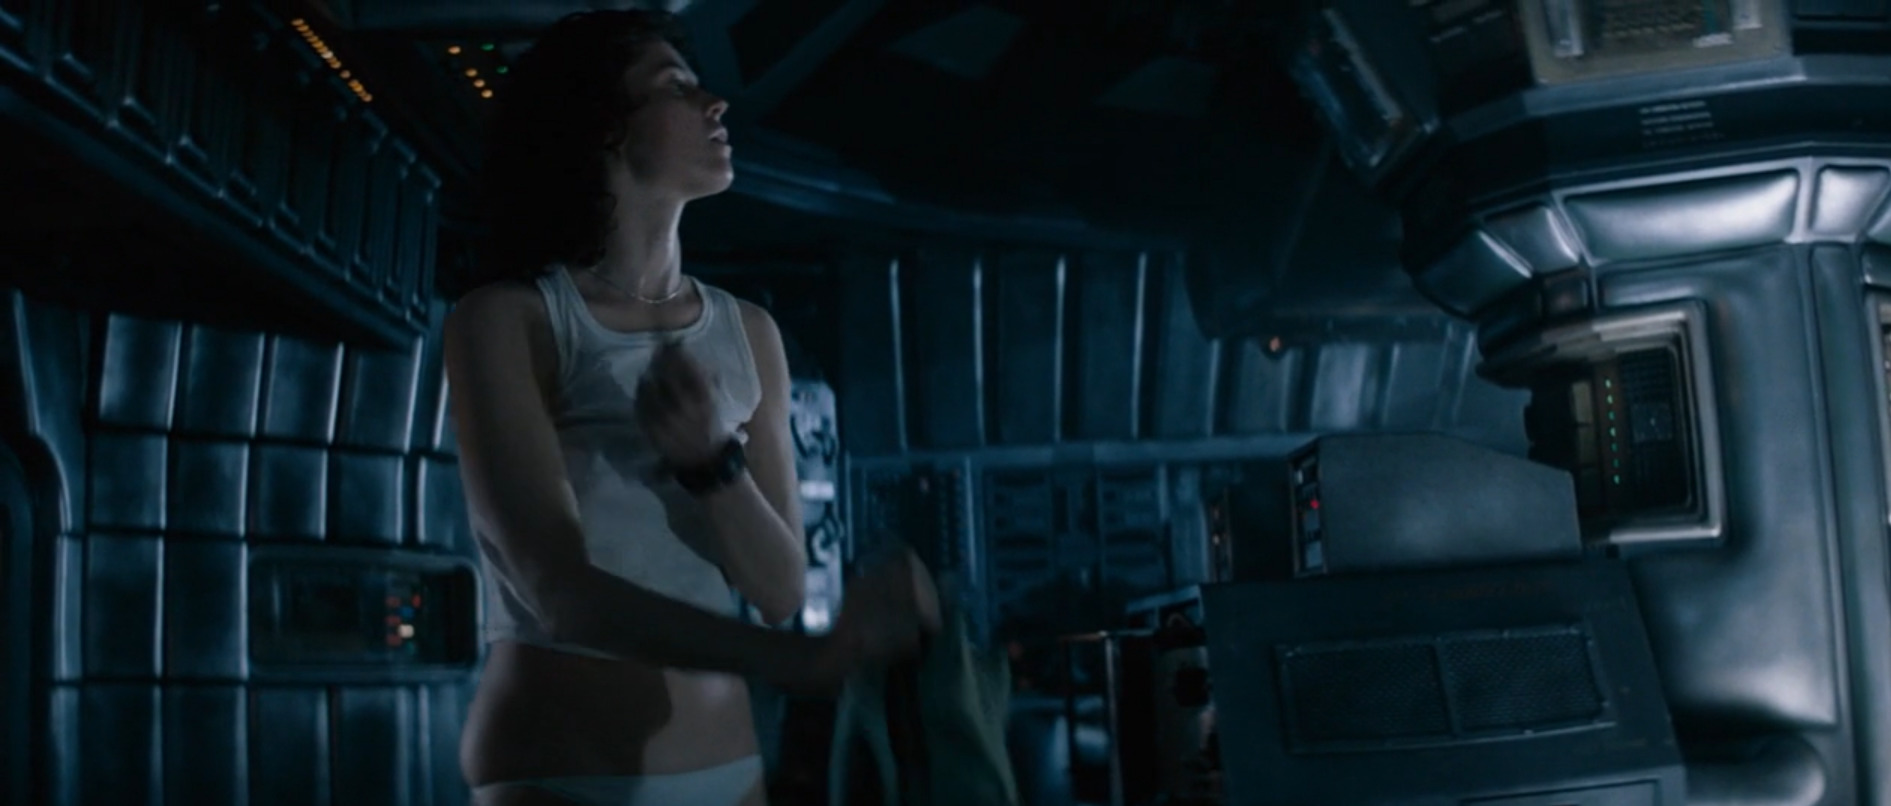 Ripley removes her flight suit after successfully reaching an escape pod, unaware the alien has snuck aboard the pod, as well.